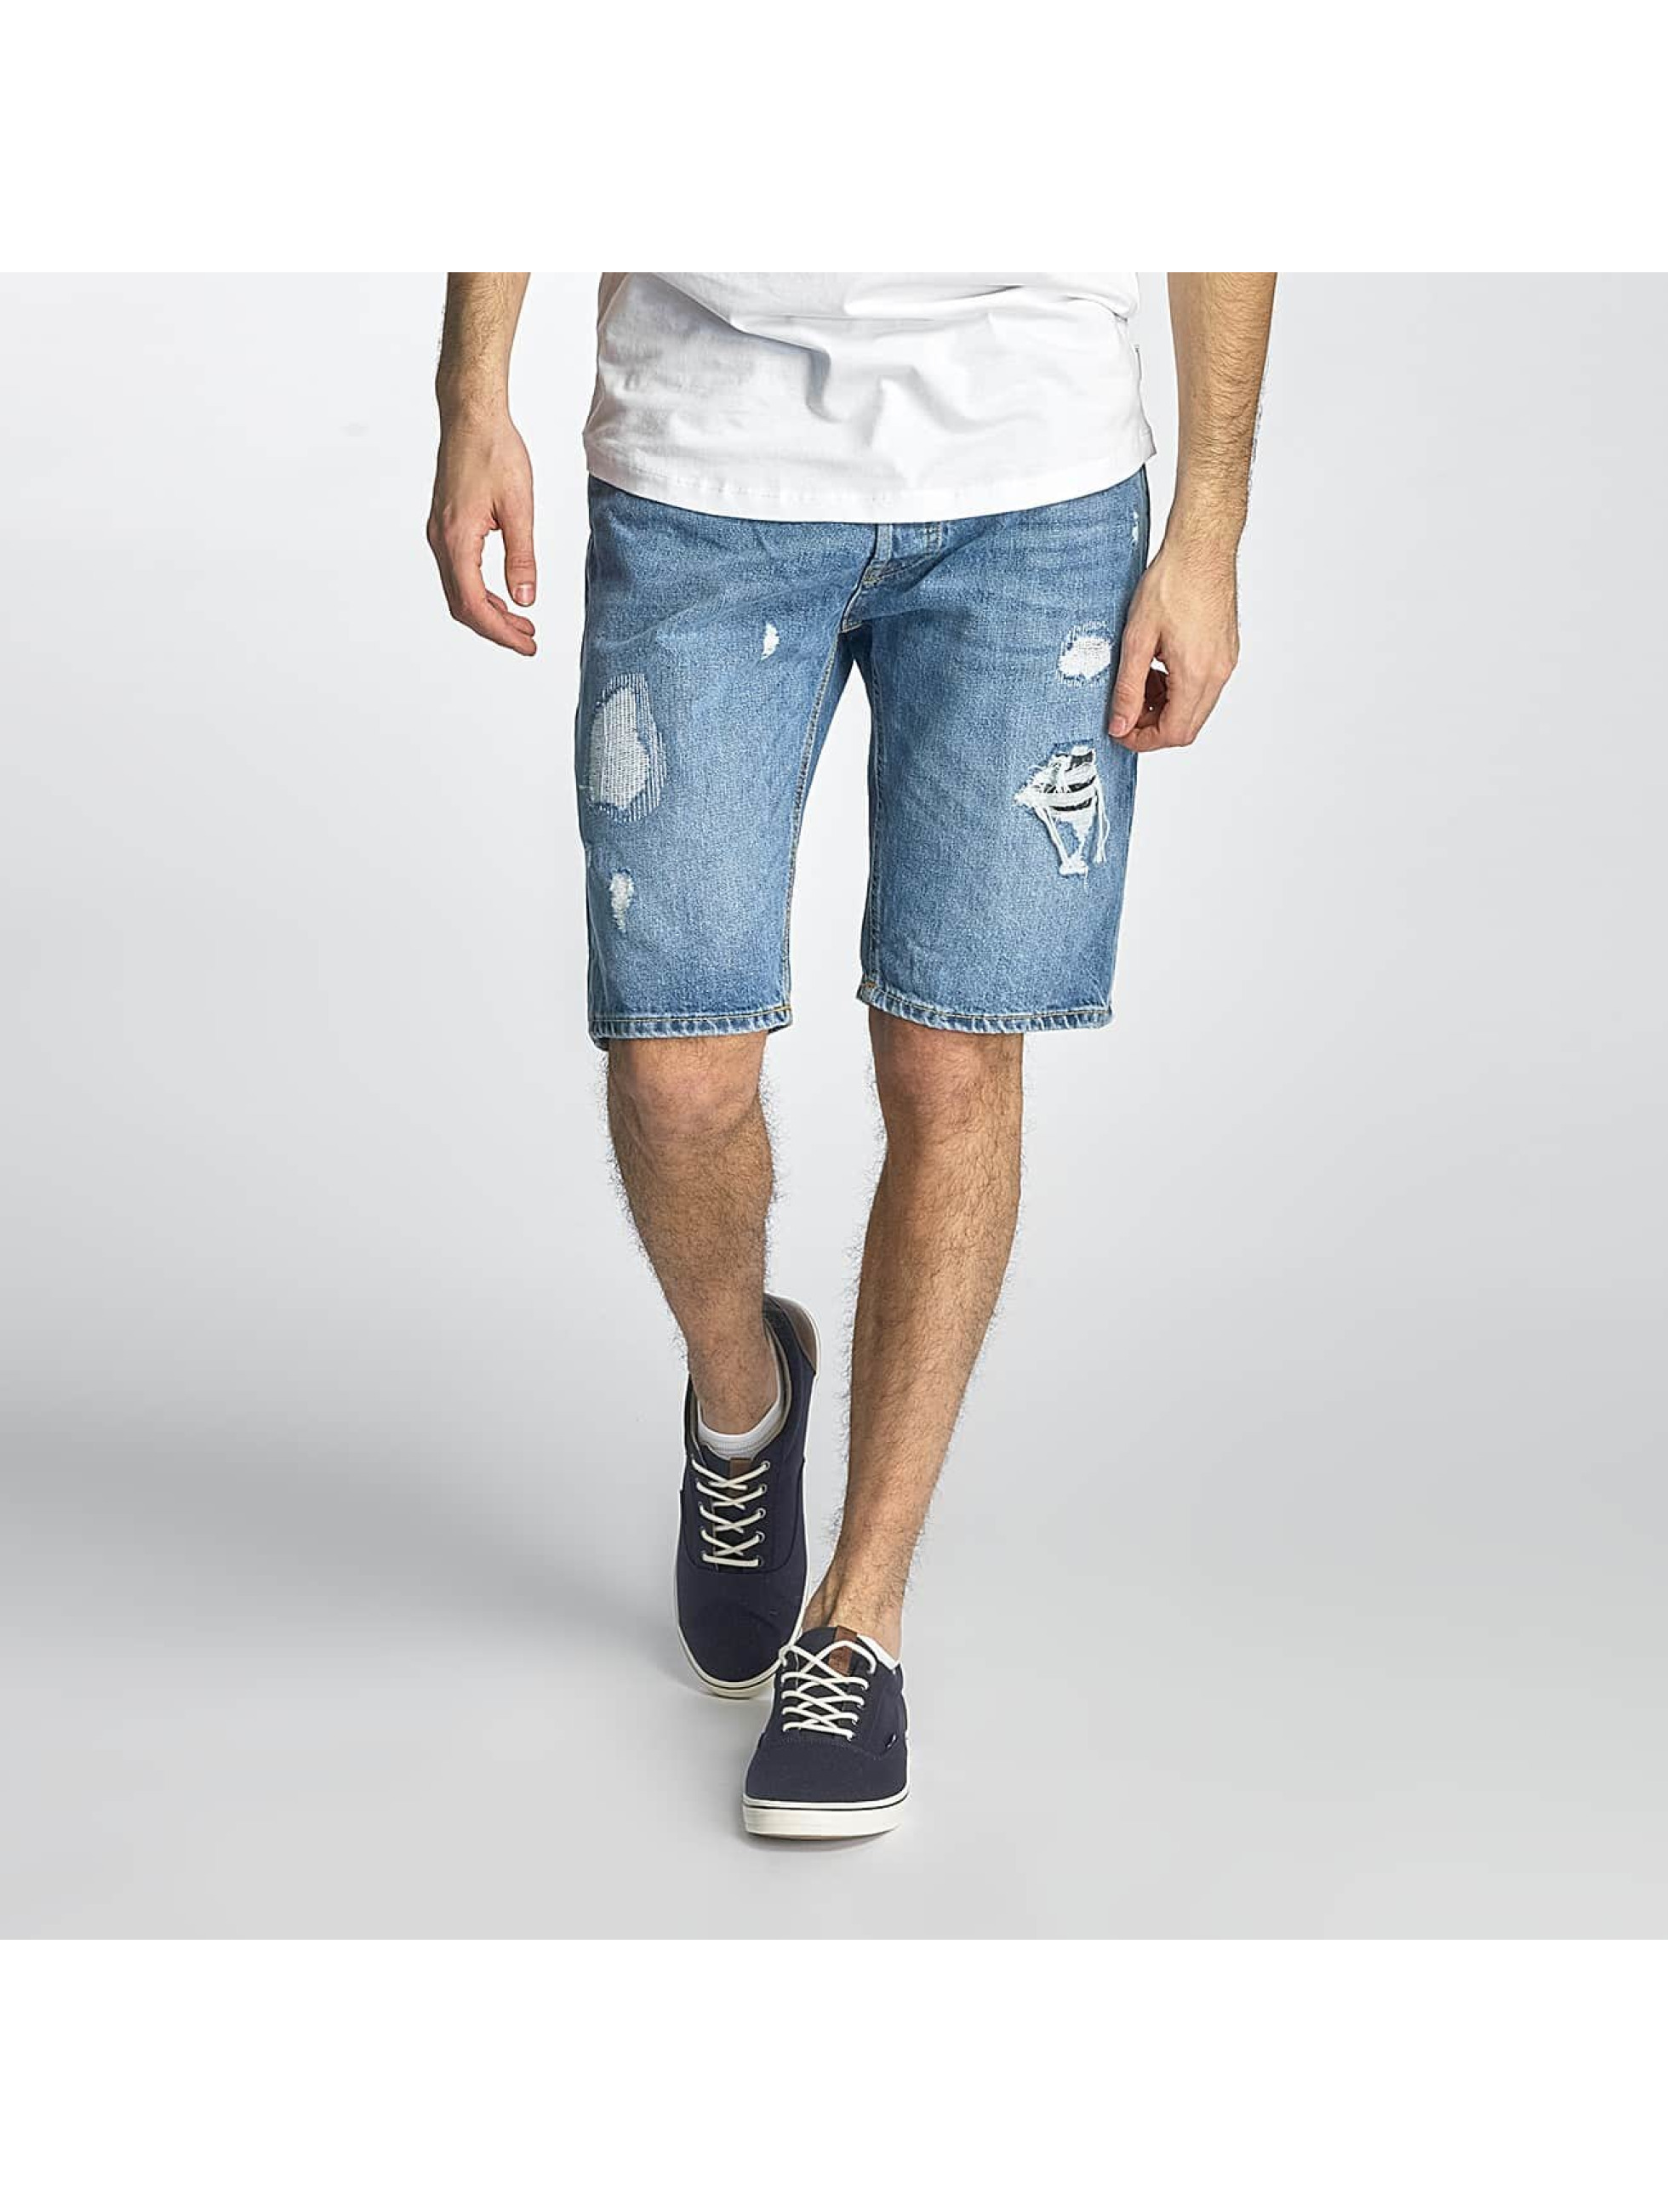 Jack & Jones Männer Shorts jjiRick jjOriginal in blau